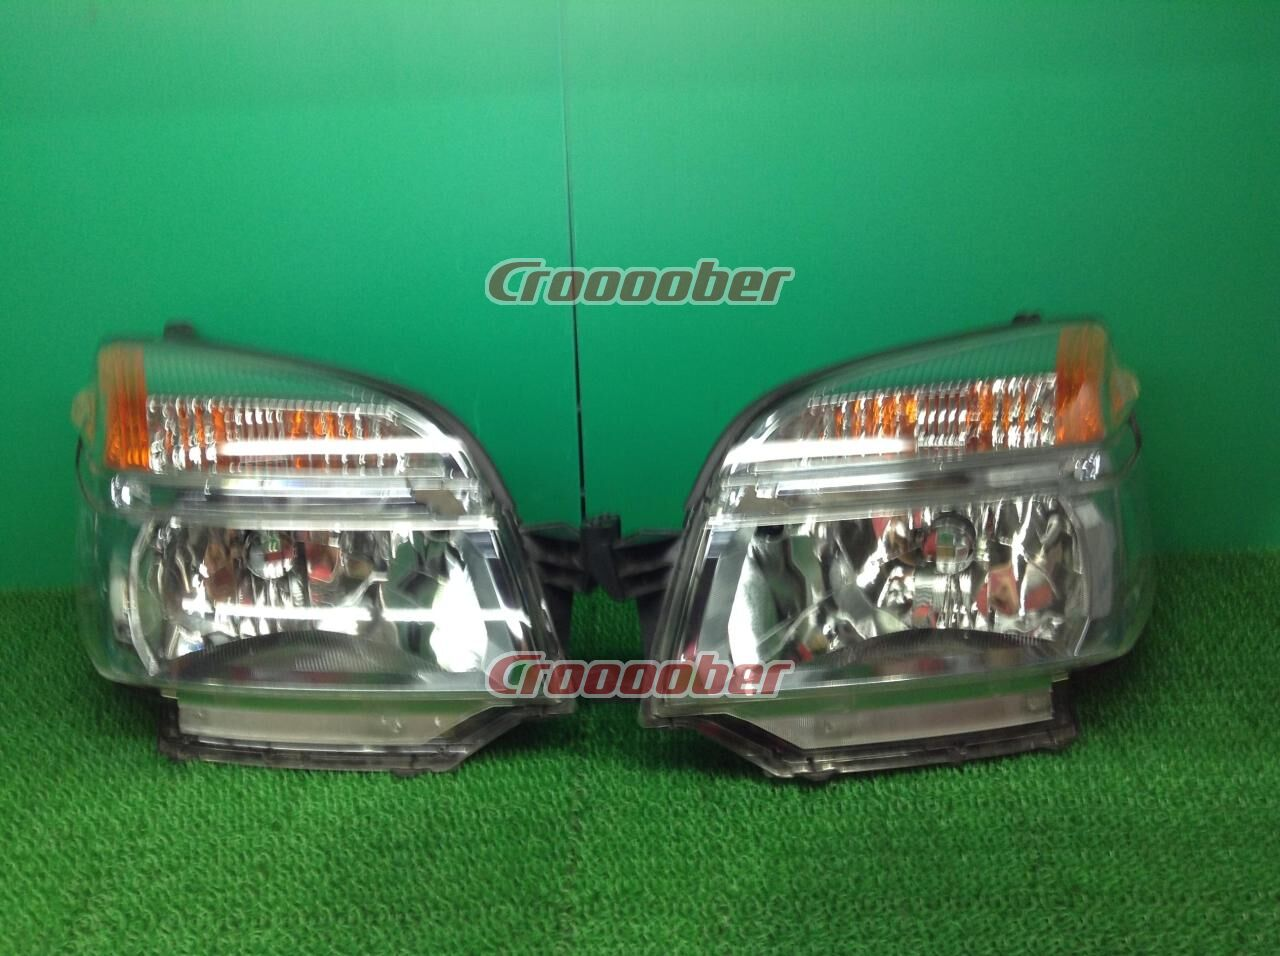 Price Down Rare Yellowing Small Head Light Toyota 60voxy Previous